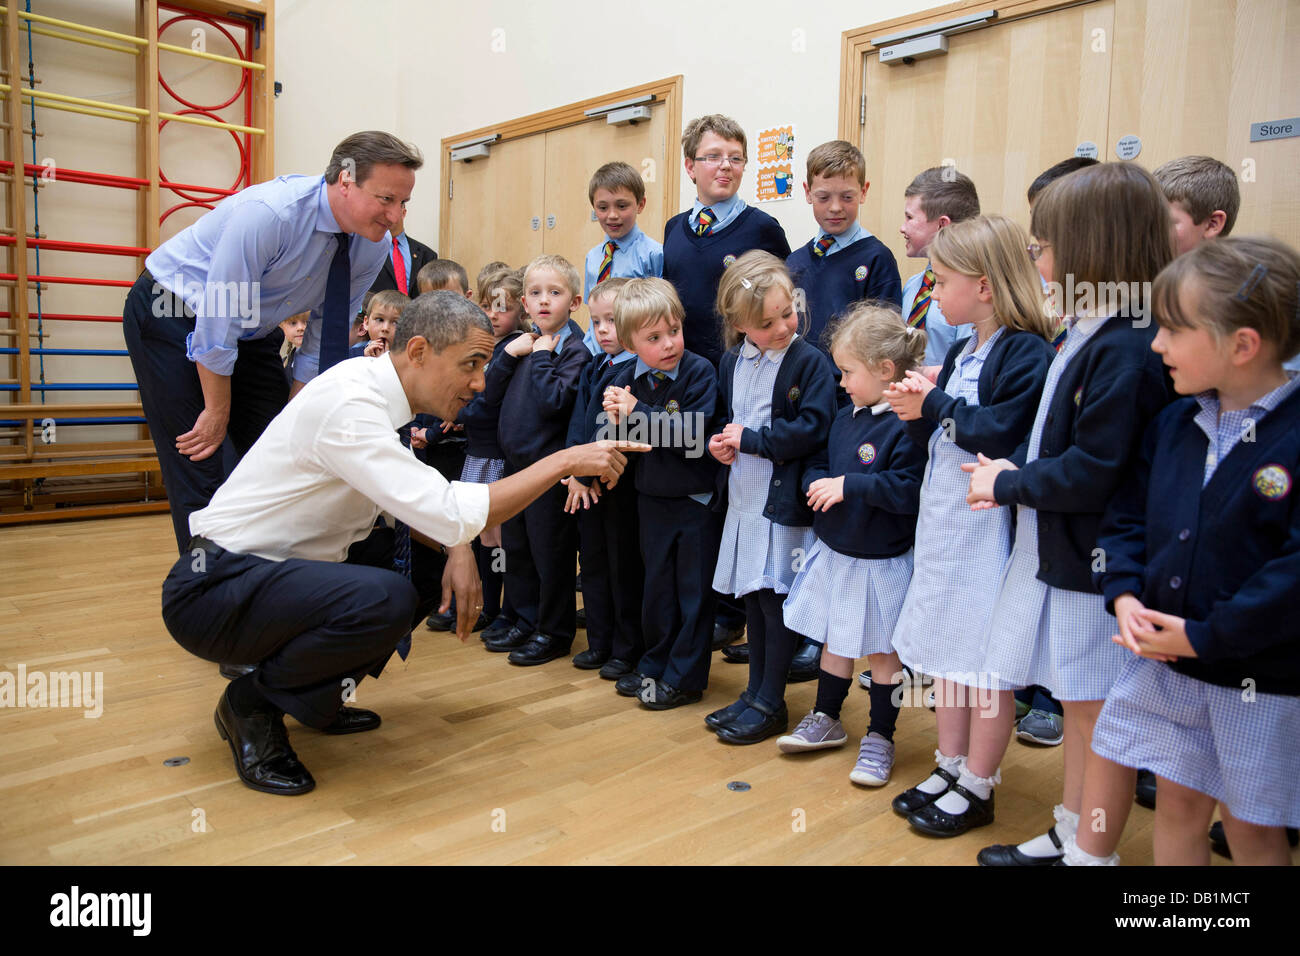 School Uniforms British Stock Photos Amp School Uniforms British Stock Images